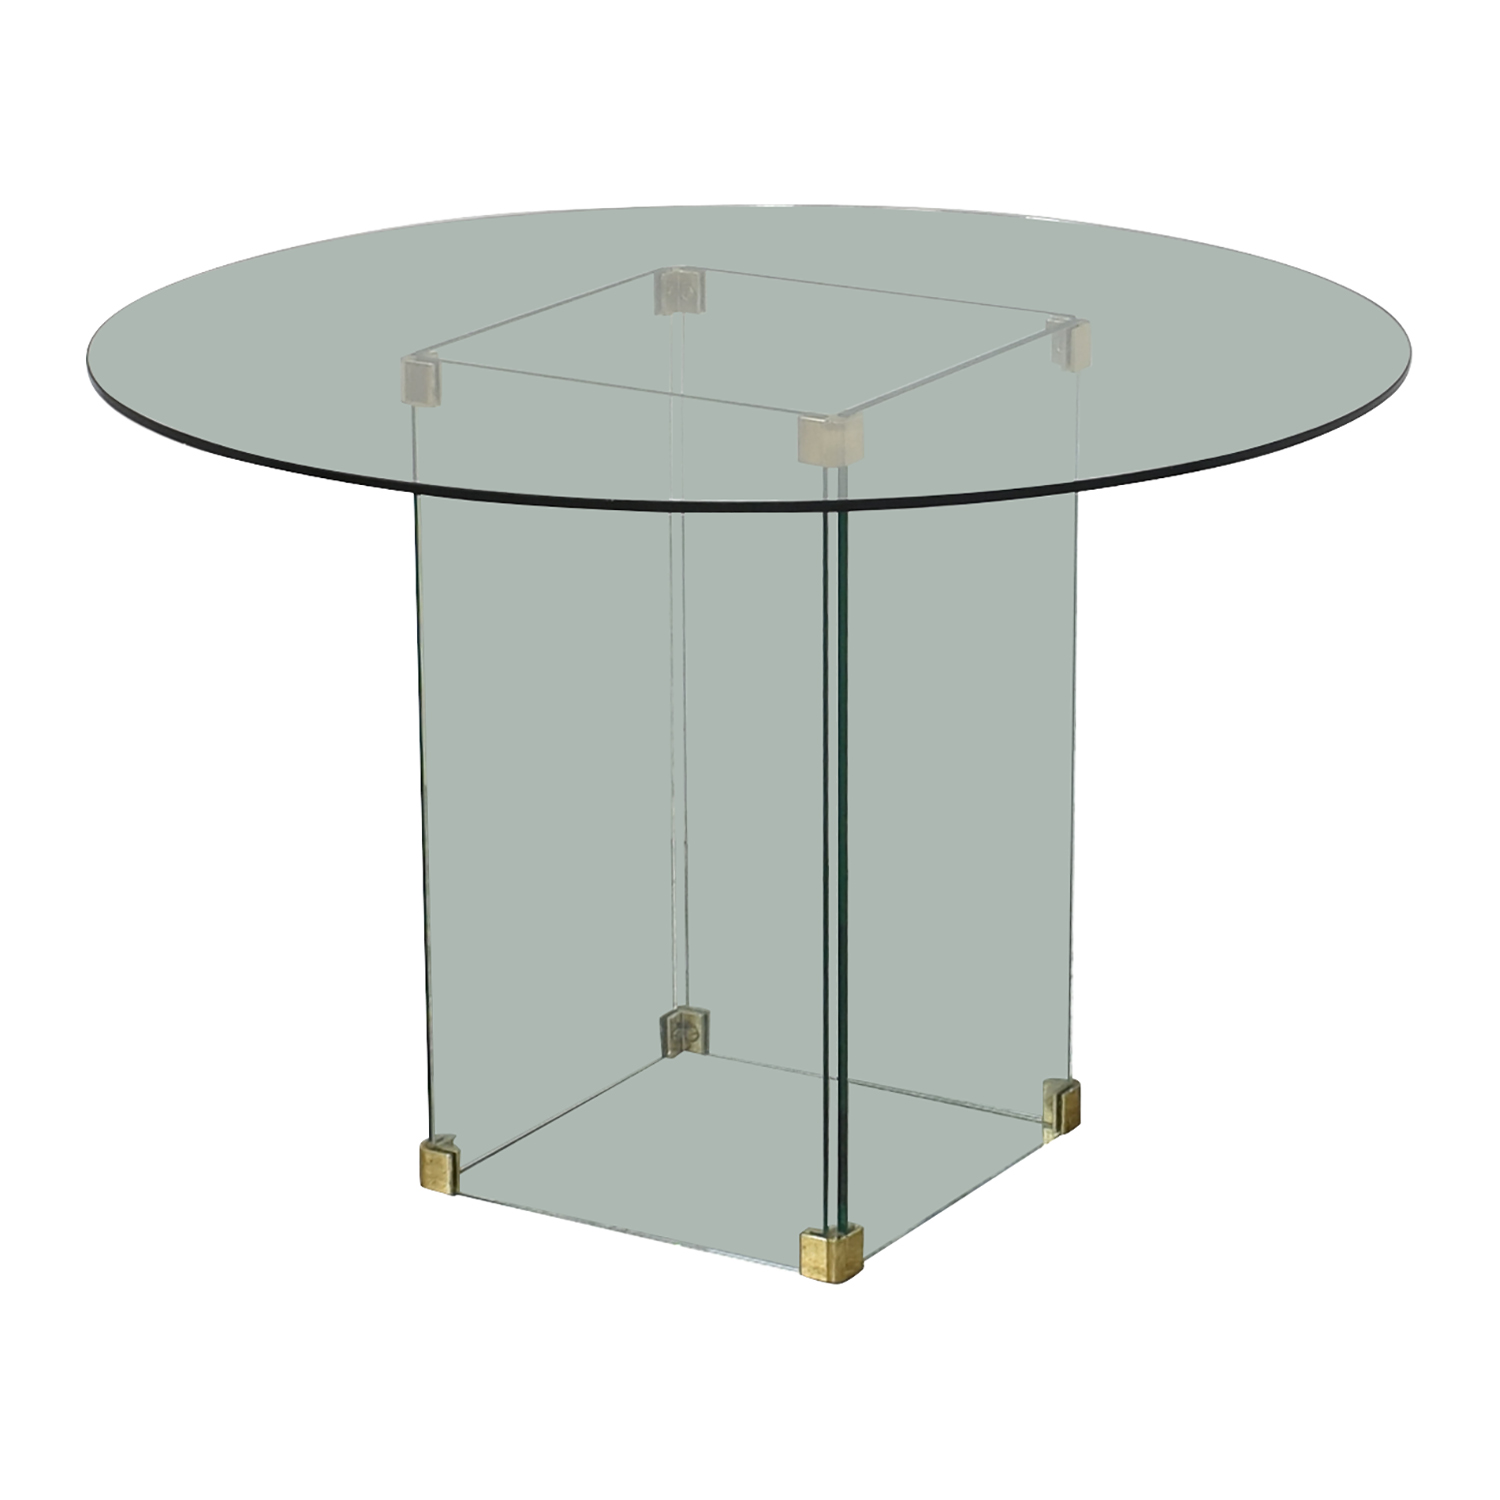 Round Glass Dining Table on sale